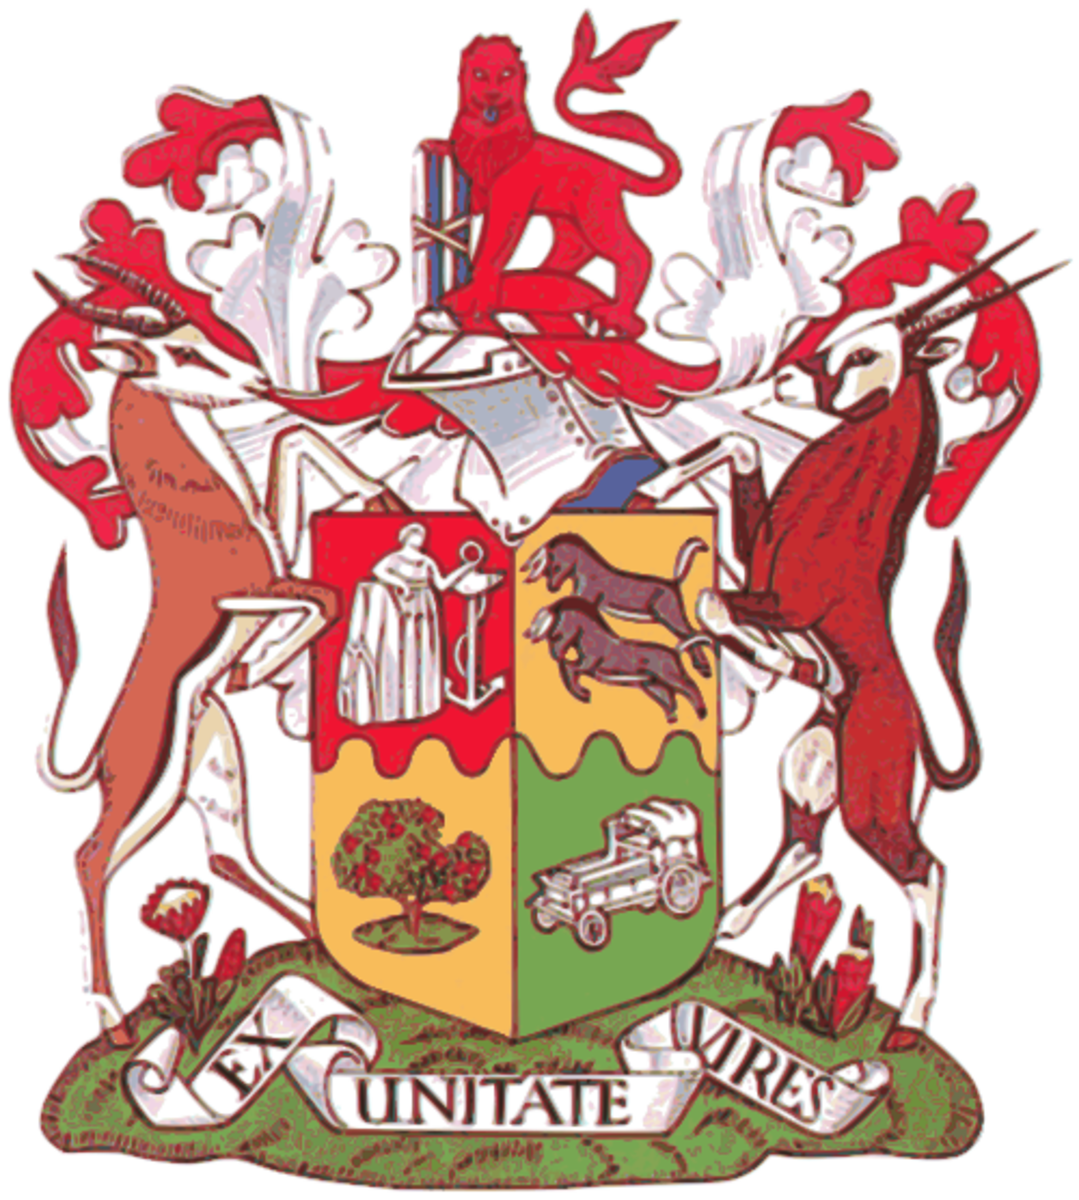 Former Coat of Arms of South Africa, from 1932 to 2000. Image Wikipedia